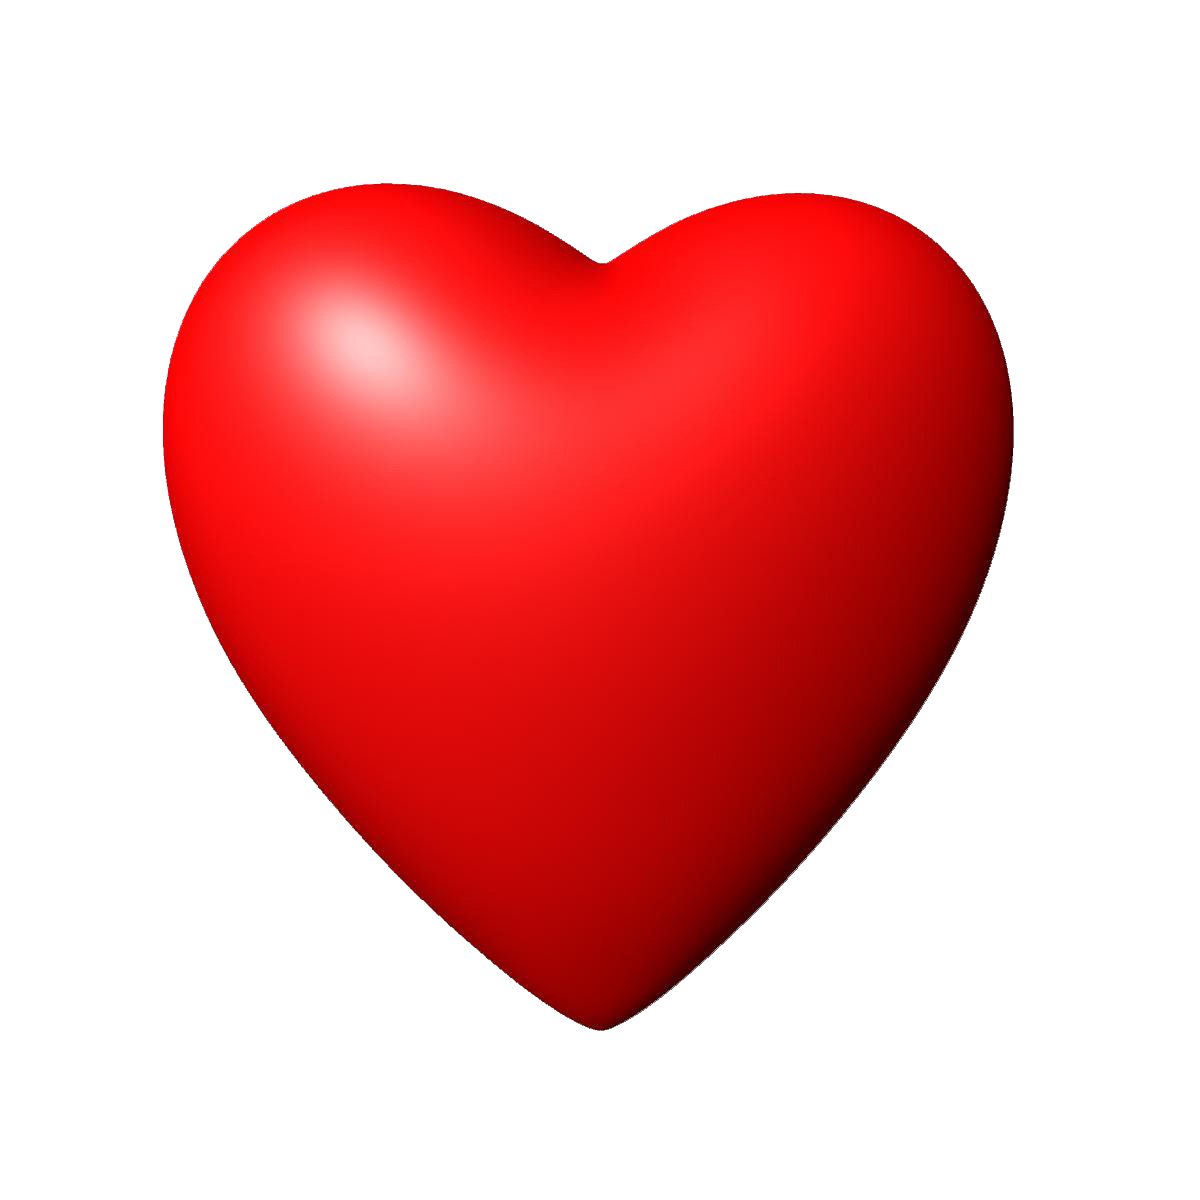 Red heart PNG image, free dow